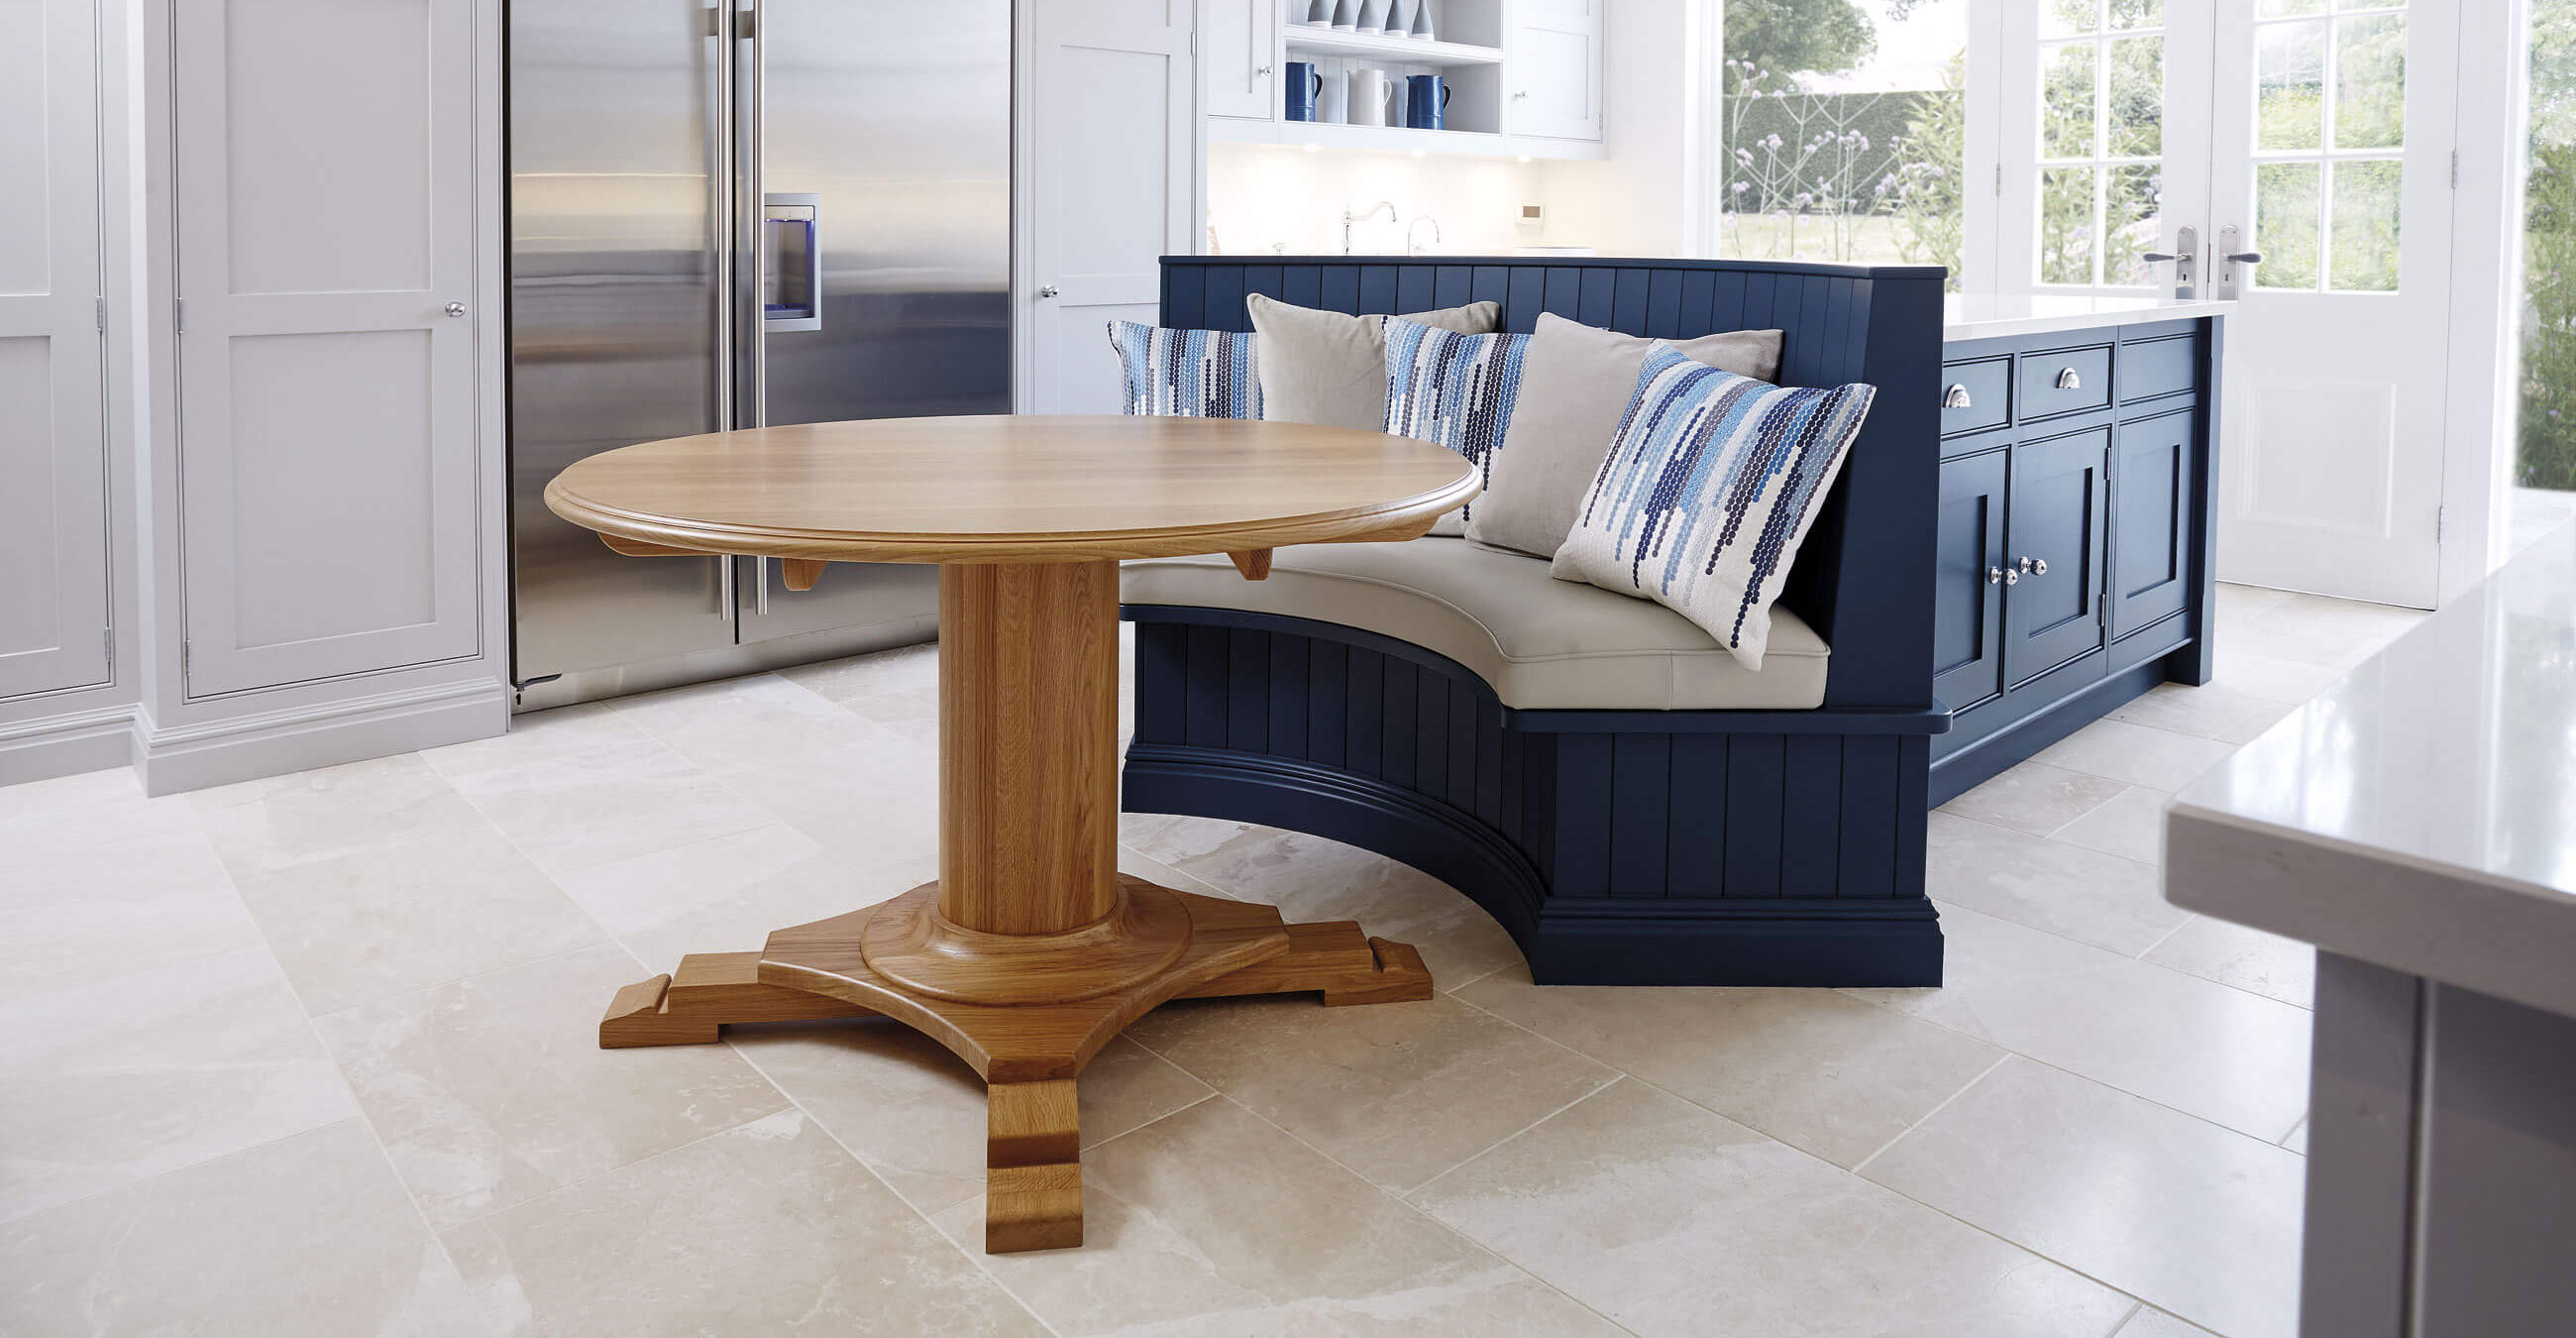 impressing kitchen island seating. Kitchen Feature. Seating \u0026 Dining Impressing Island R